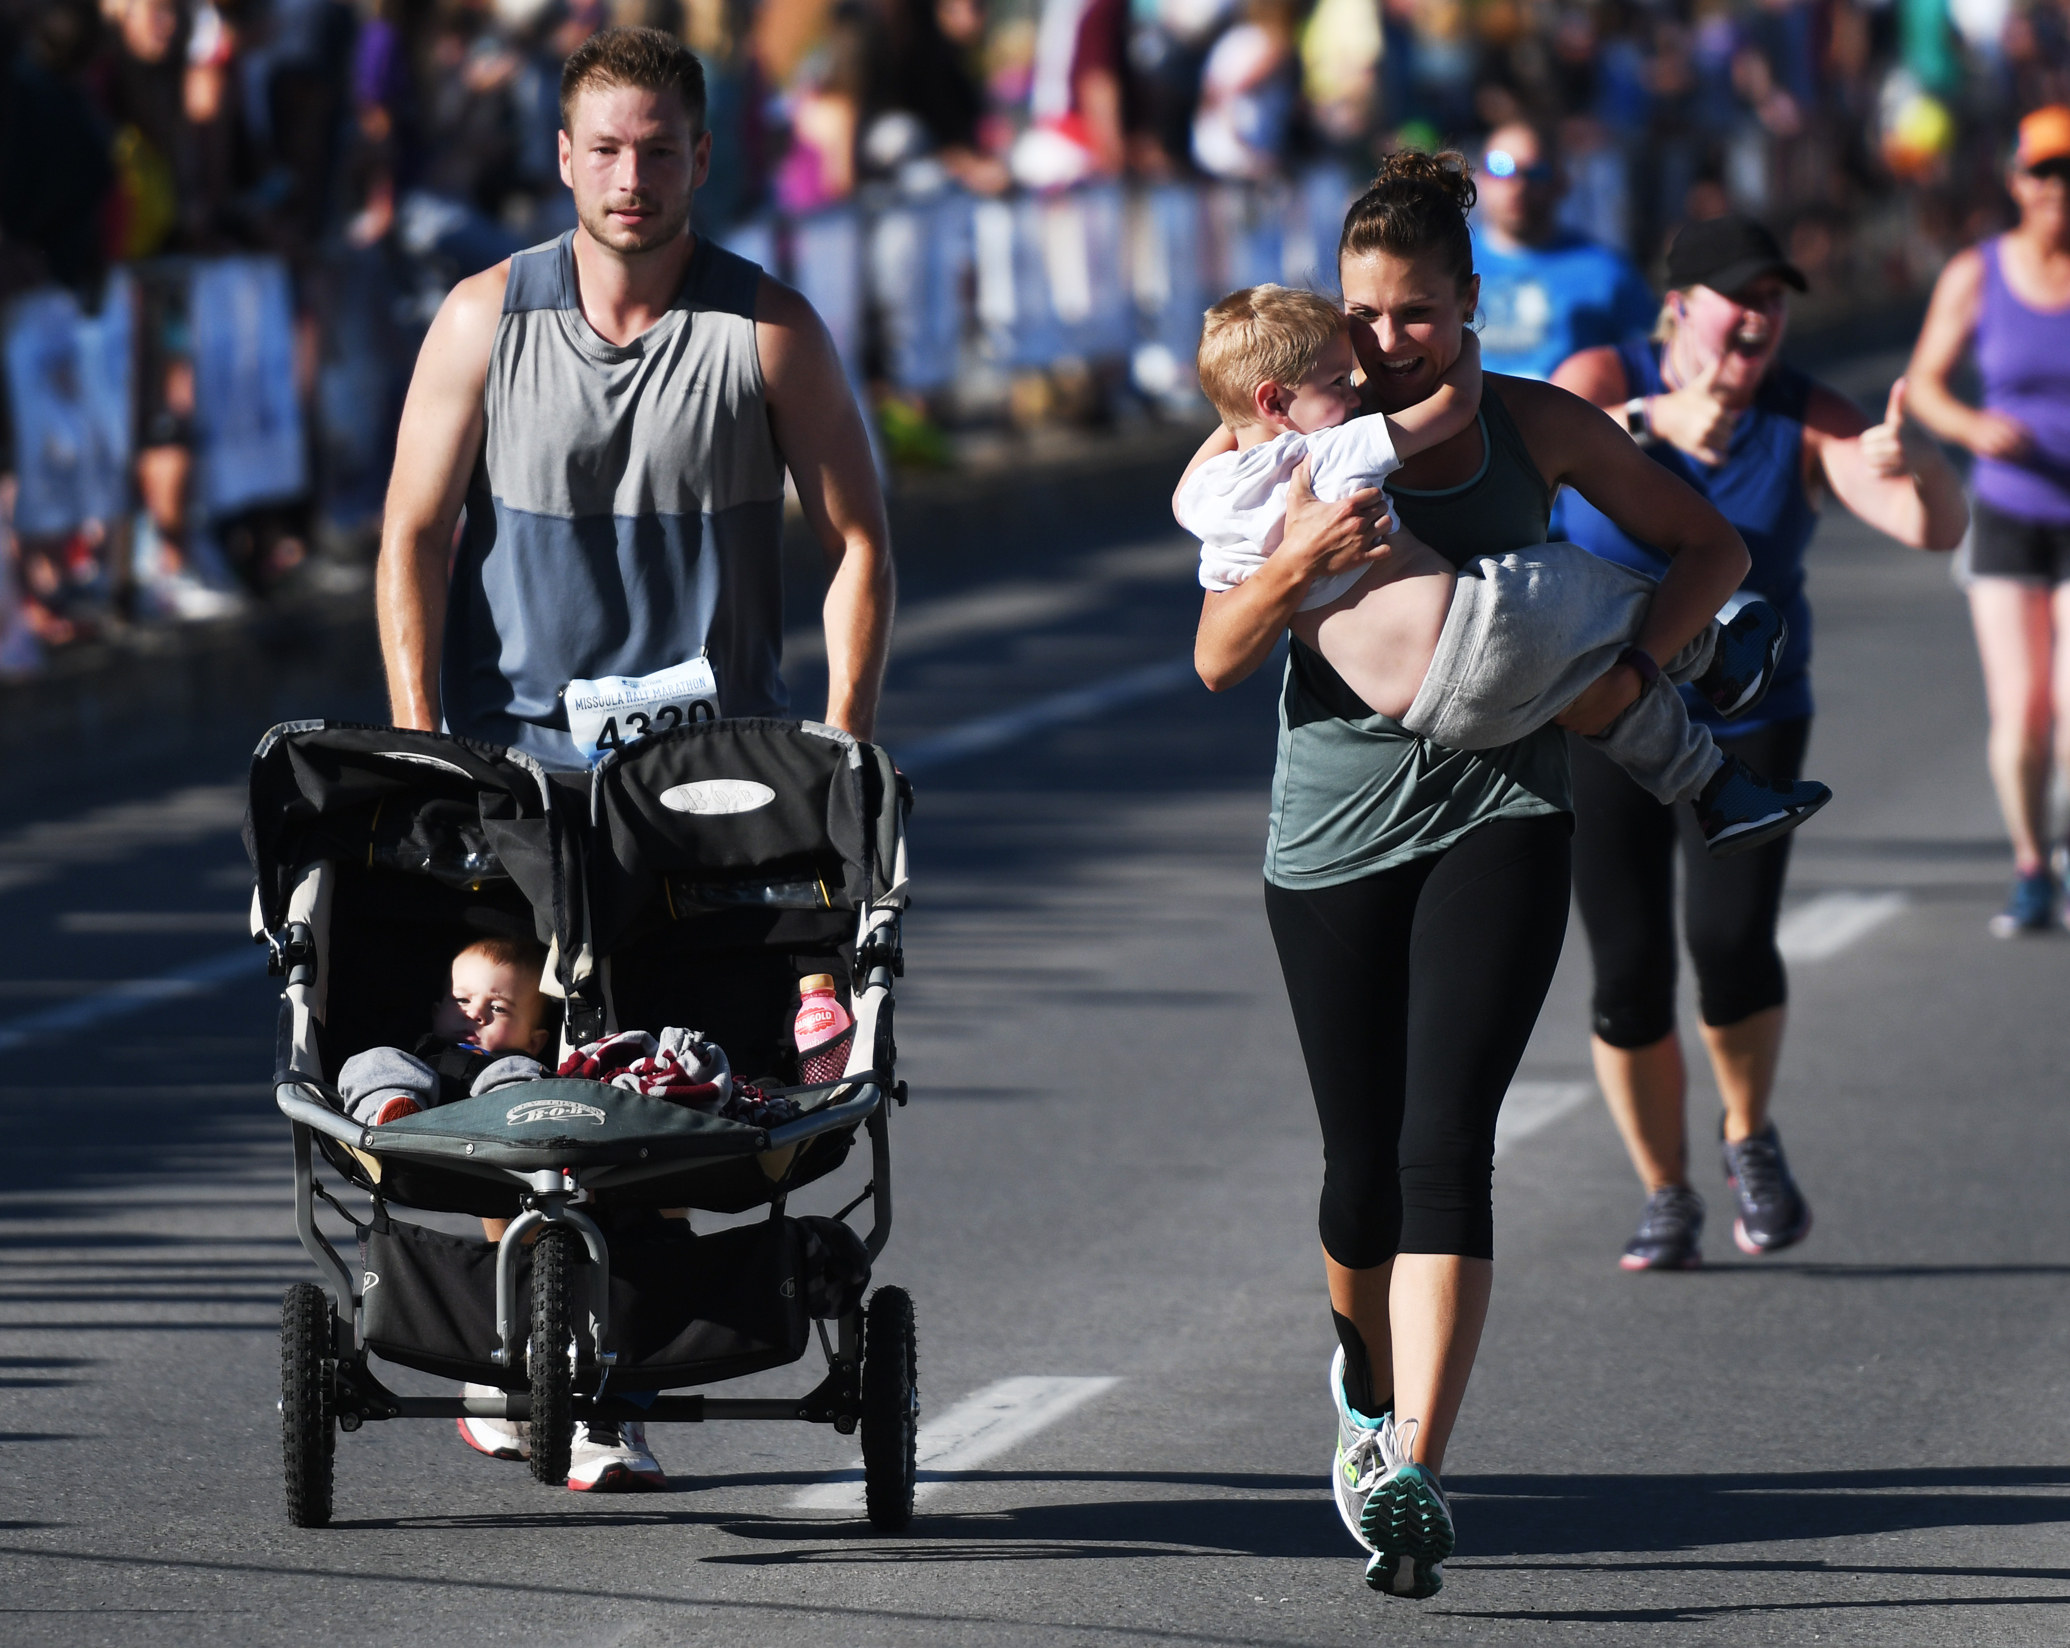 Brittany Rainey carries her son across the finish line for the half marathon while her husband Shaun Rainey (4320) pushes the stroller with their other son.